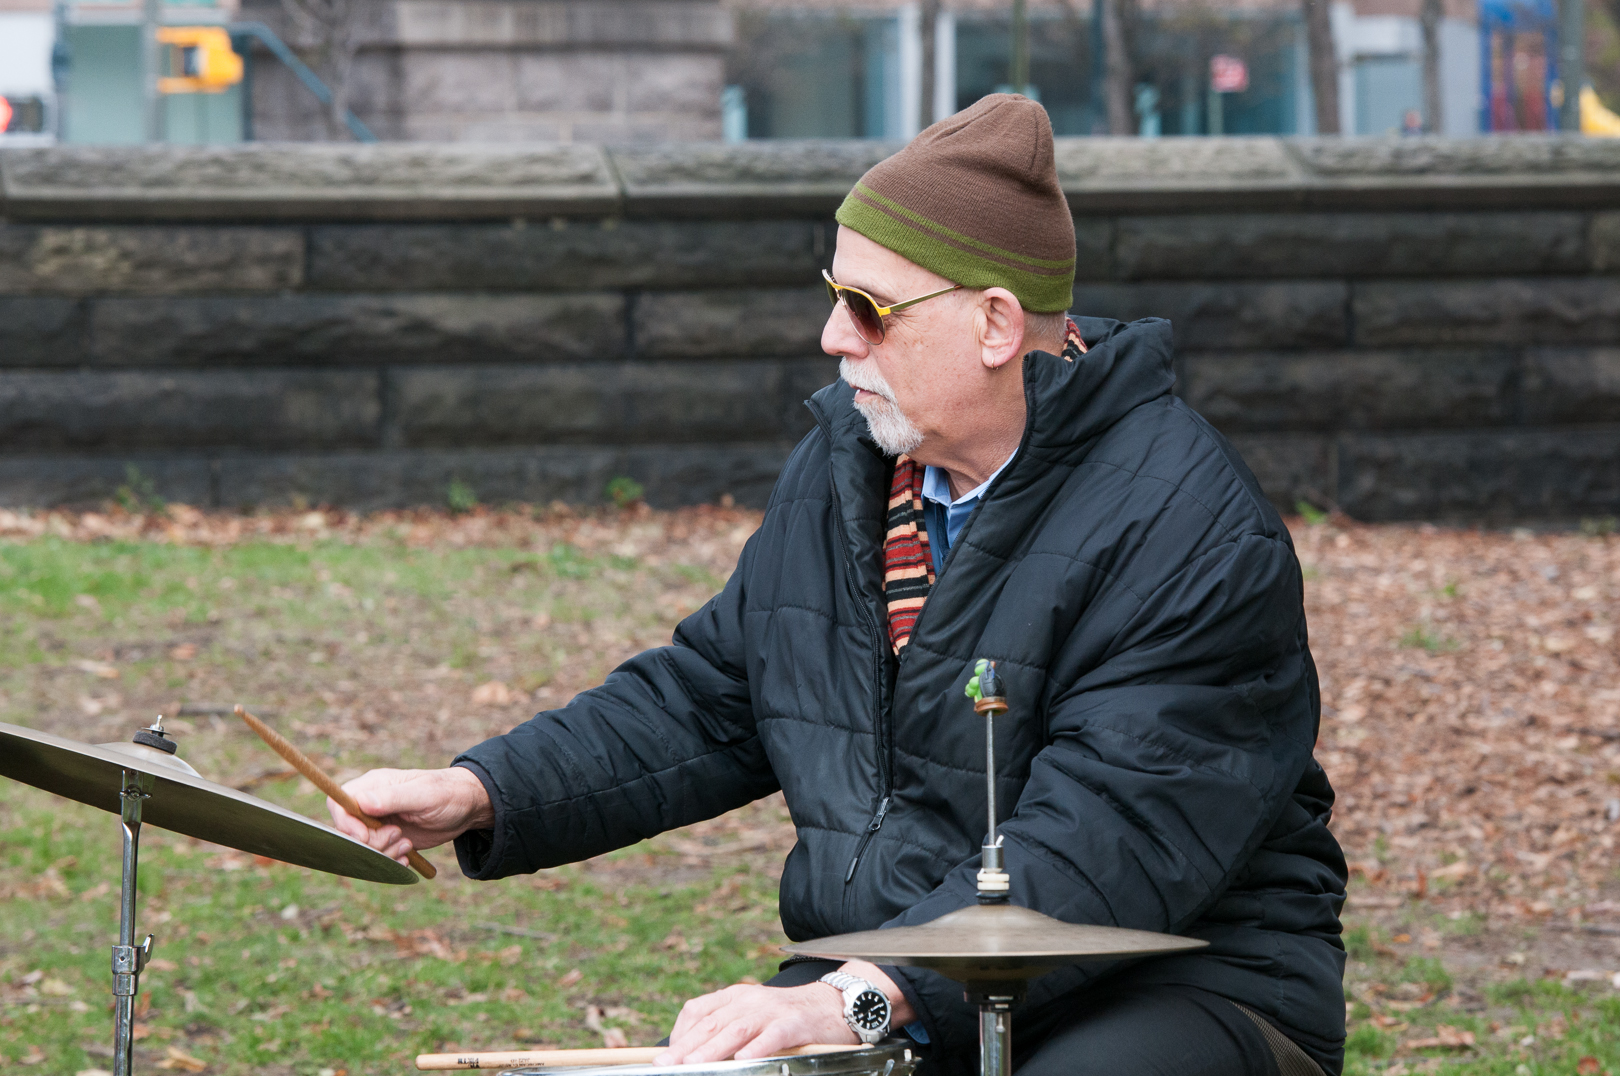 Bill Goodwin with Kirk Knuffke at Jazz and Colors in Central Park